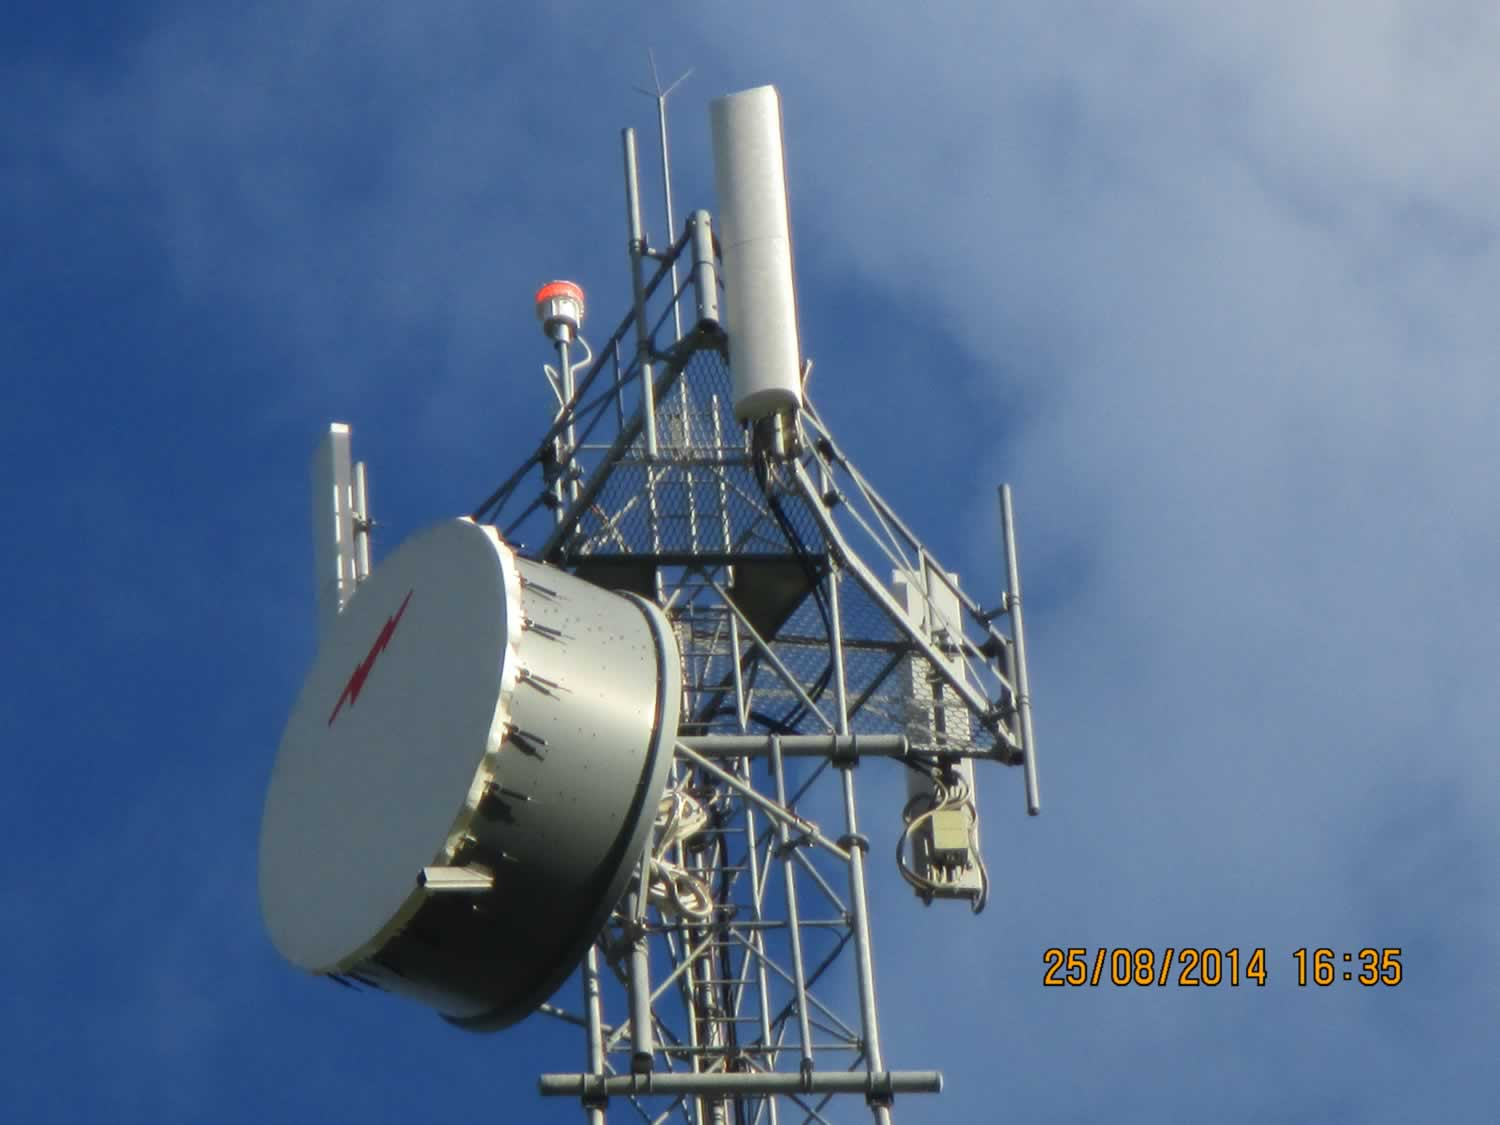 Another communications tower with the Farlight L864-DC flashing away.